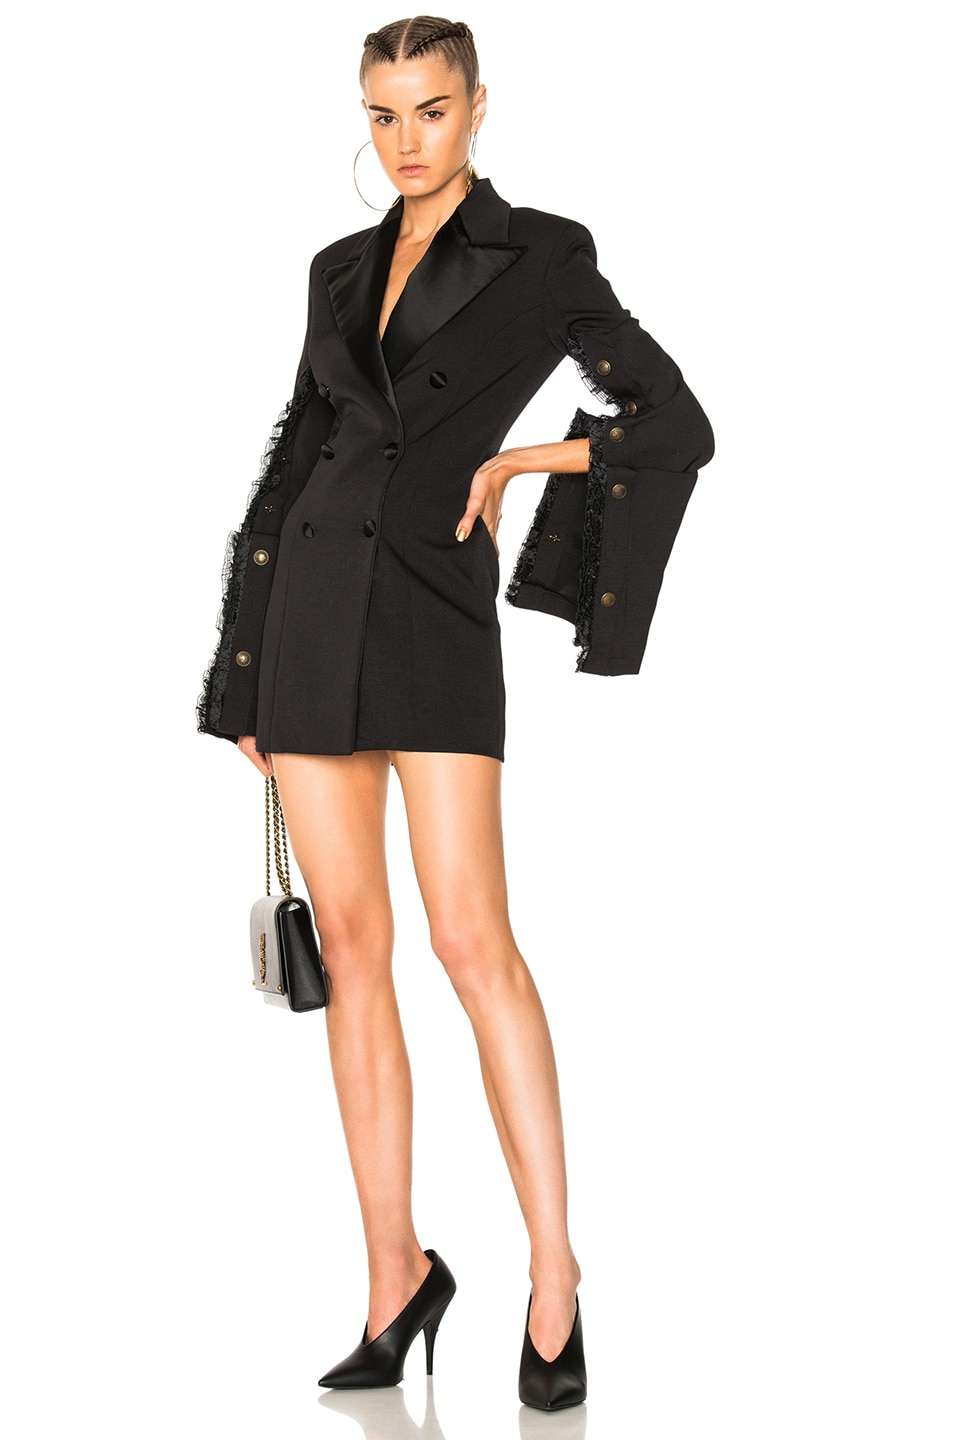 Y Project Fitted Suit Jacket Dress In Black Fwrd